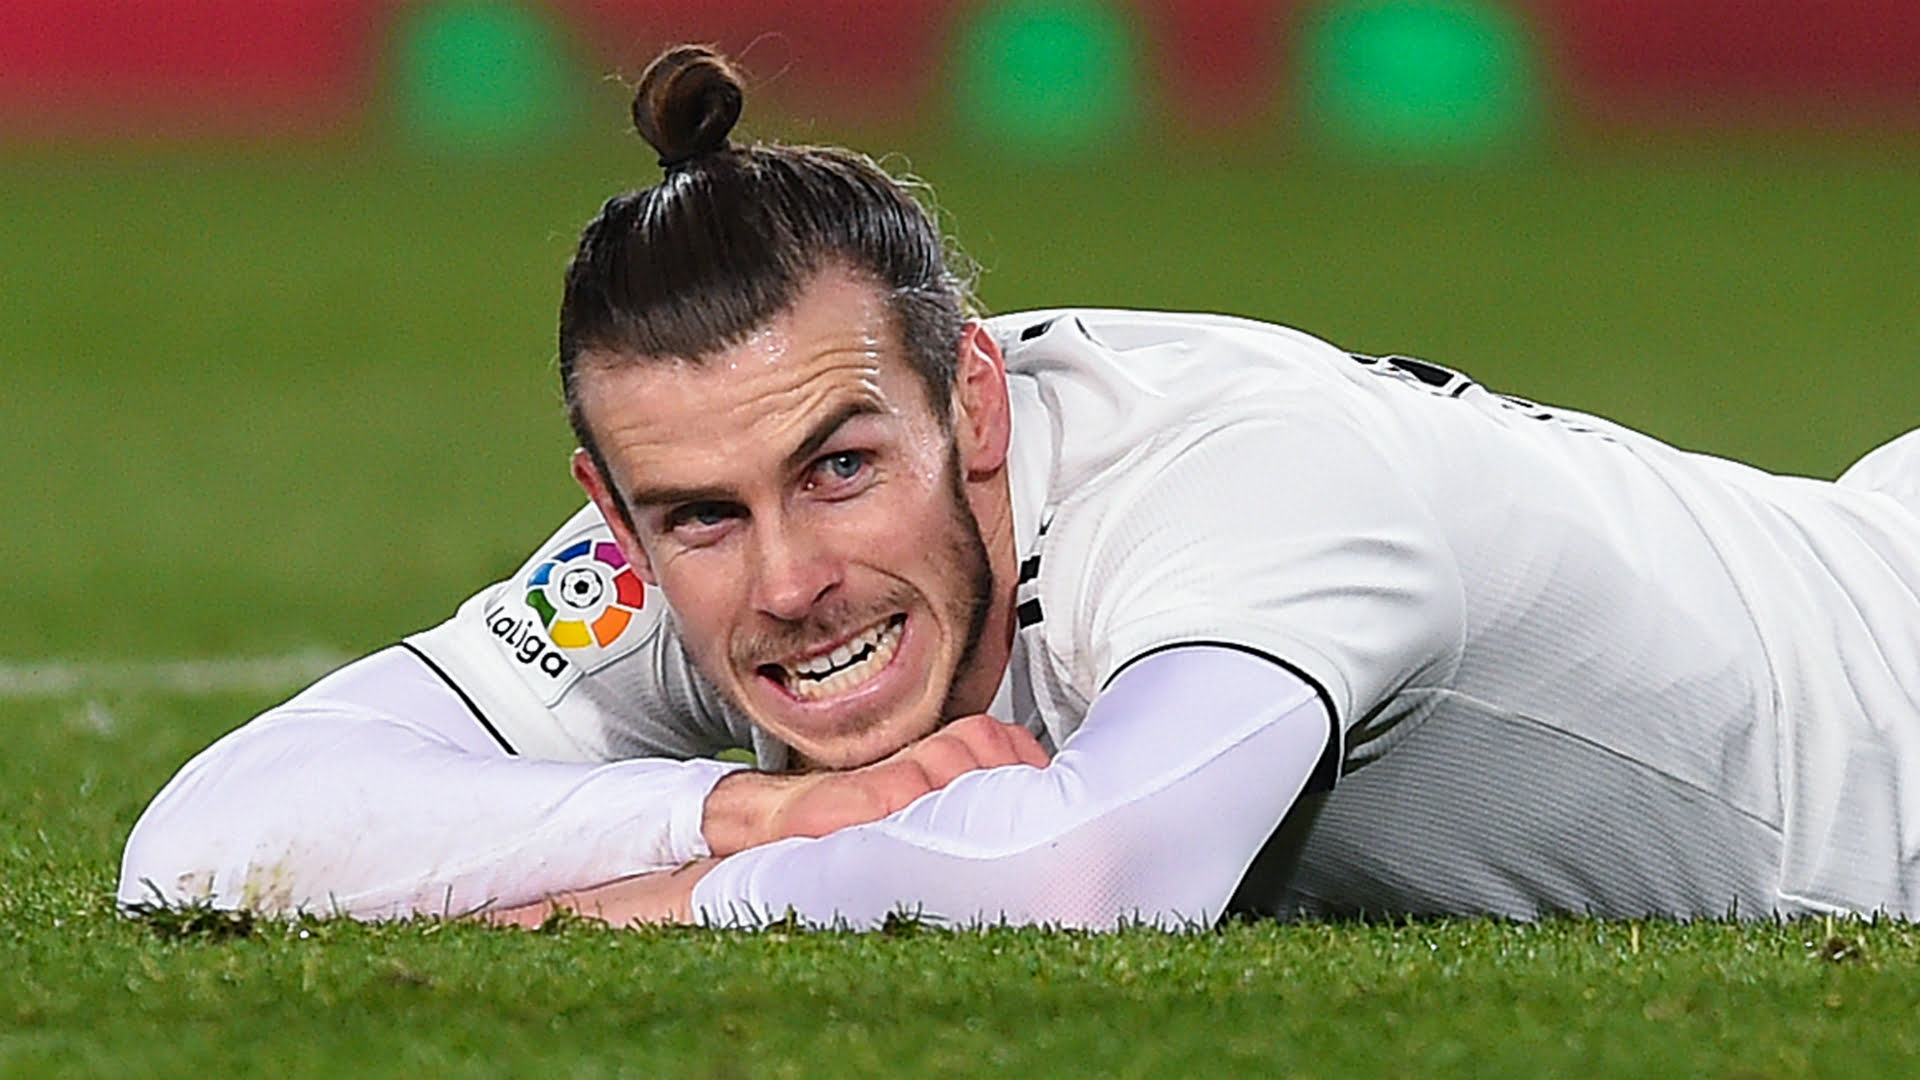 bale - Transfer: Real Madrid's Bale to receive £960,000-a-week wages at new club